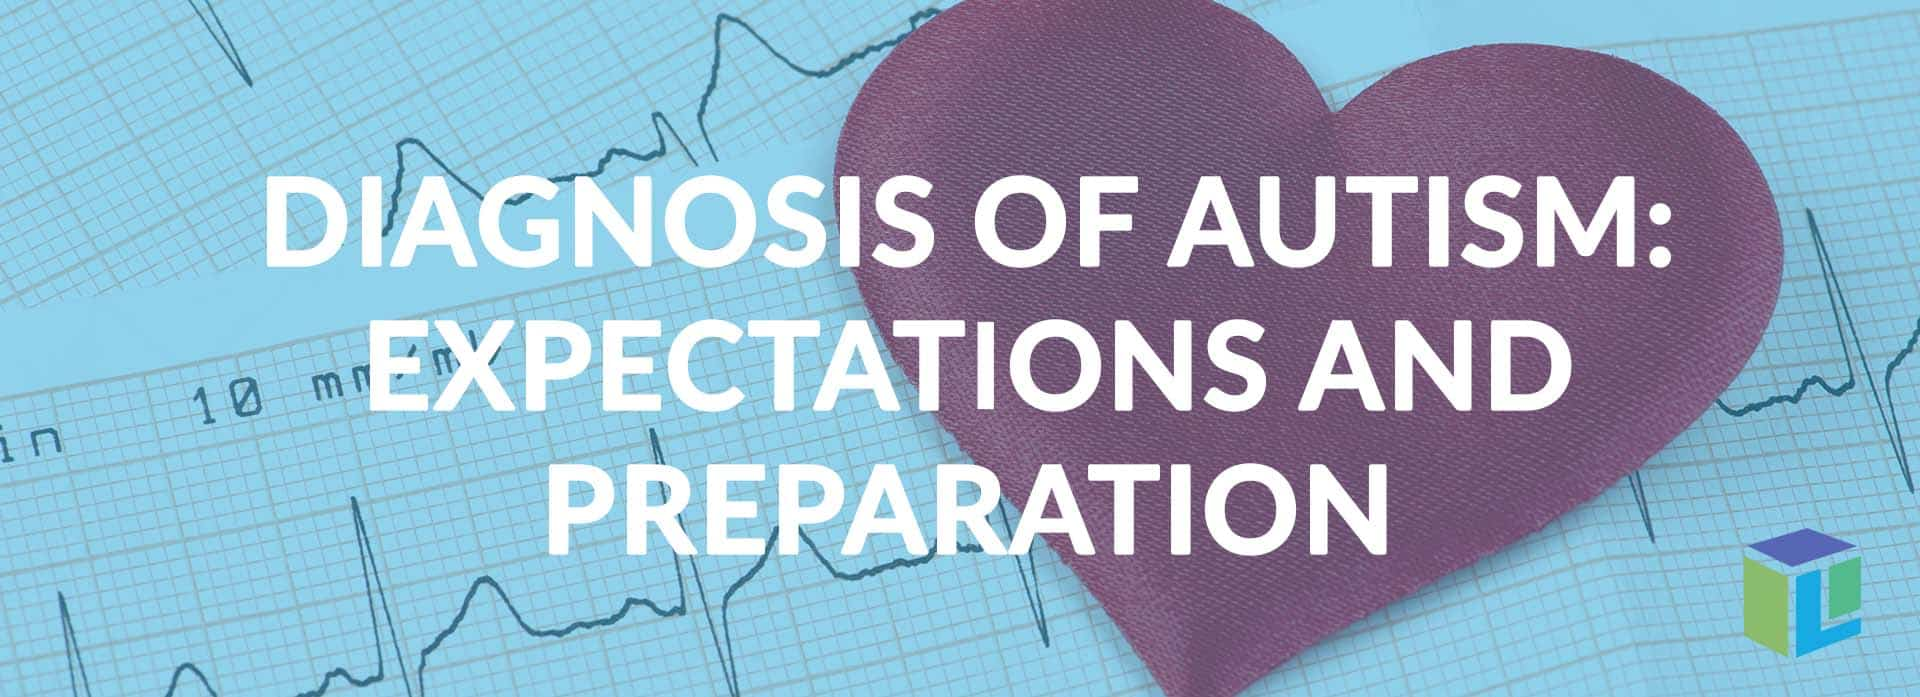 Diagnosis Of Autism: Expectations And Preparation